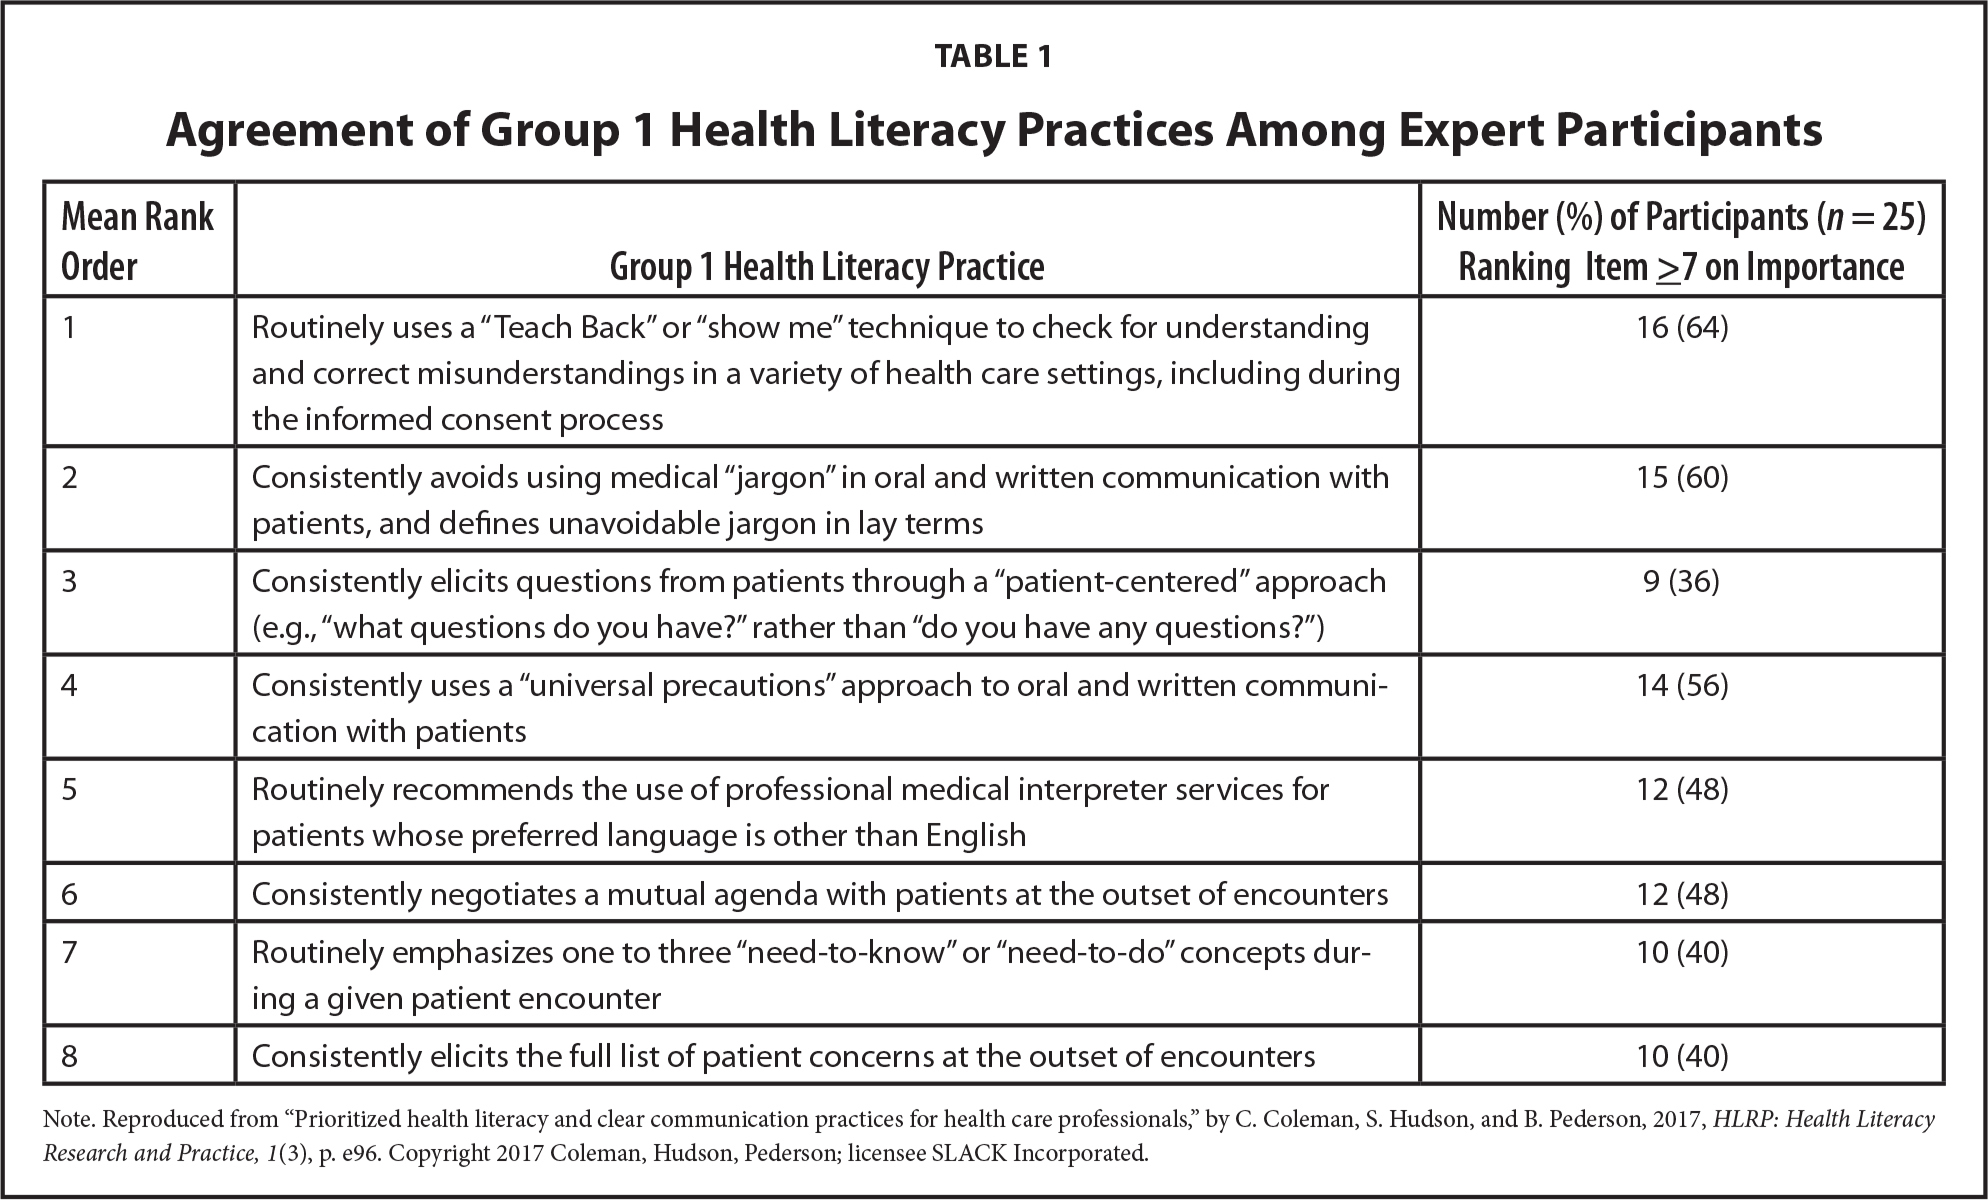 Agreement of Group 1 Health Literacy Practices Among Expert Participants